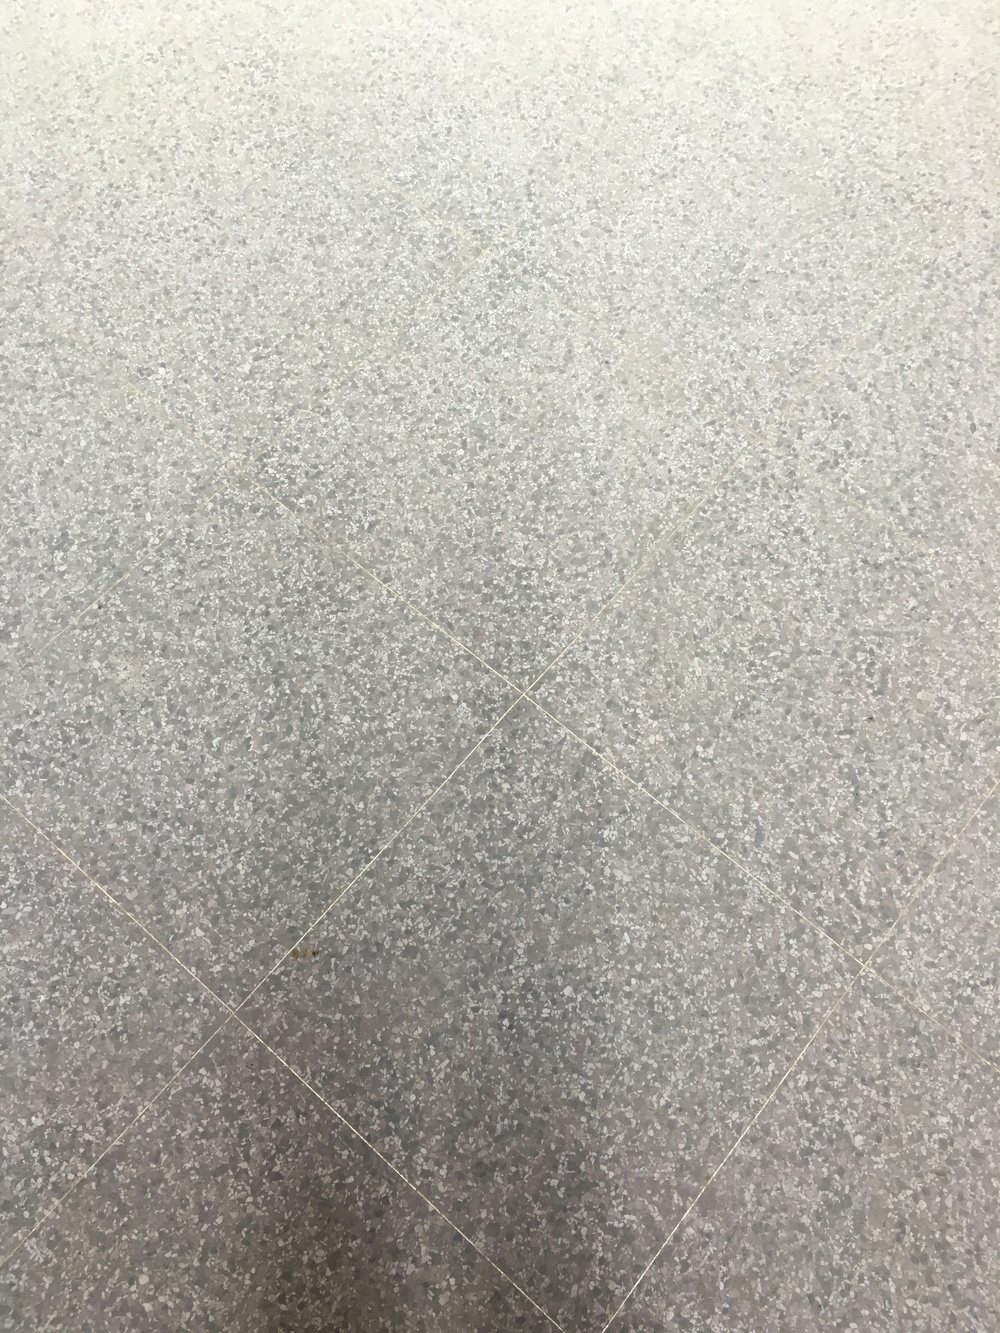 Terrazzo floors before polishing.